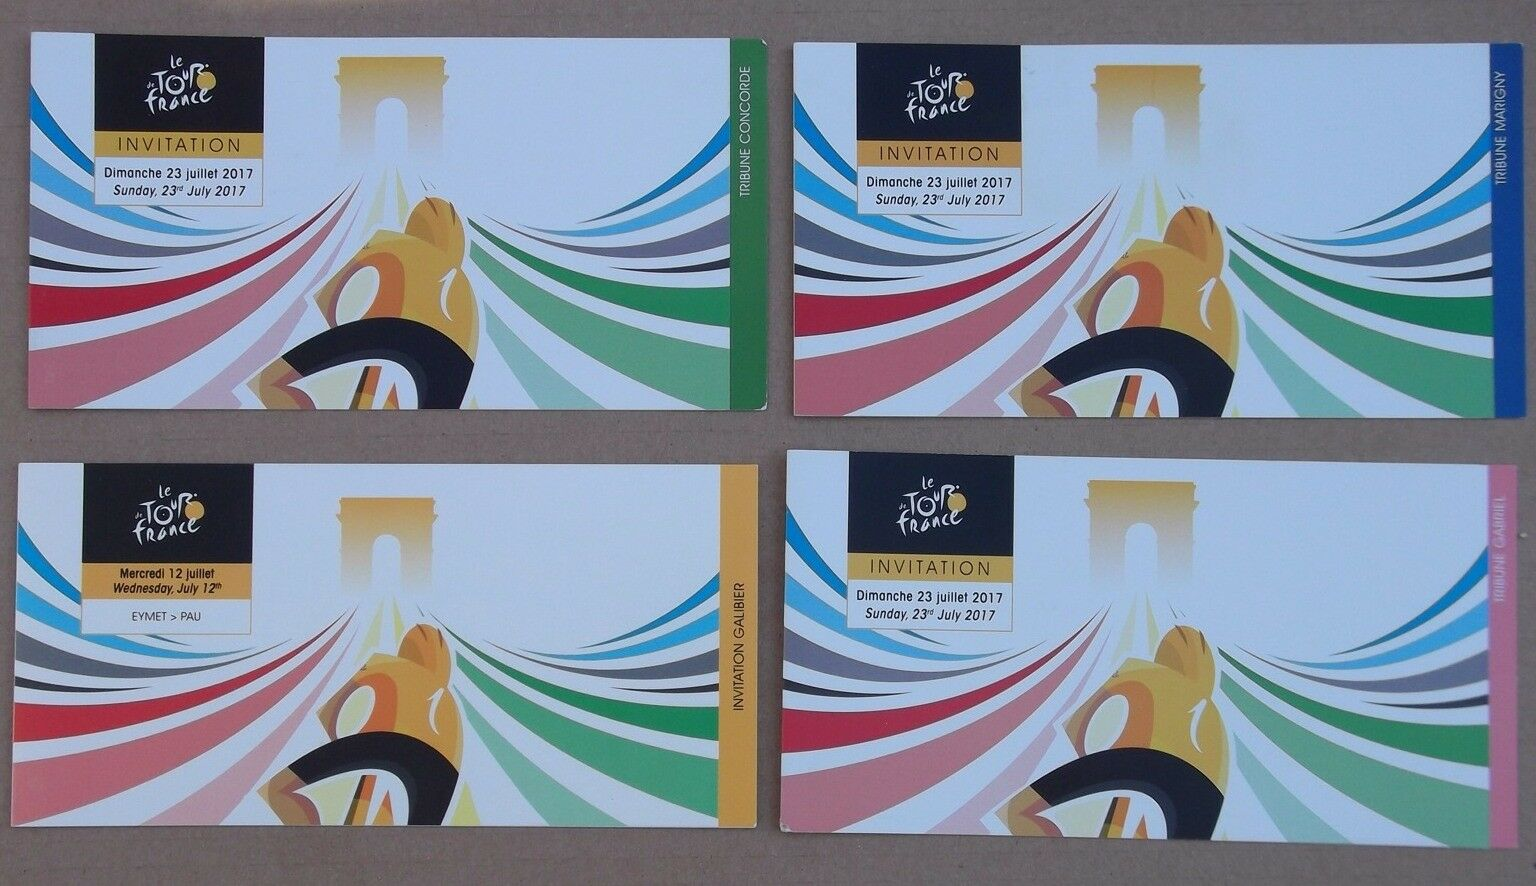 4 cartons Invitation Champs Champs Champs Elysées Paris Tour De France 2017 b1fe6b